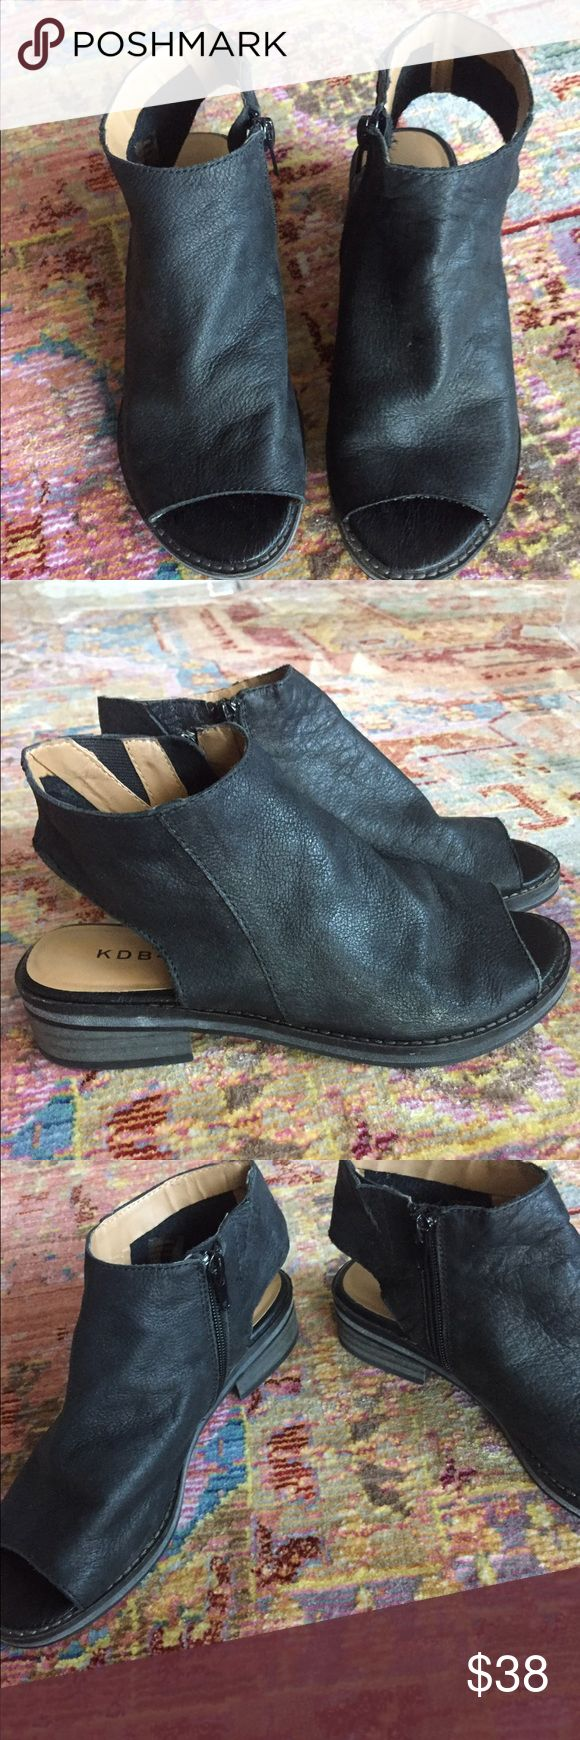 Kelsi Dagger Peep Toe Zipper Boots Only worn once! 6.5 Kelsi Dagger peep toe zipper boots! Retail for around $100 Kelsi Dagger Shoes Ankle Boots & Booties